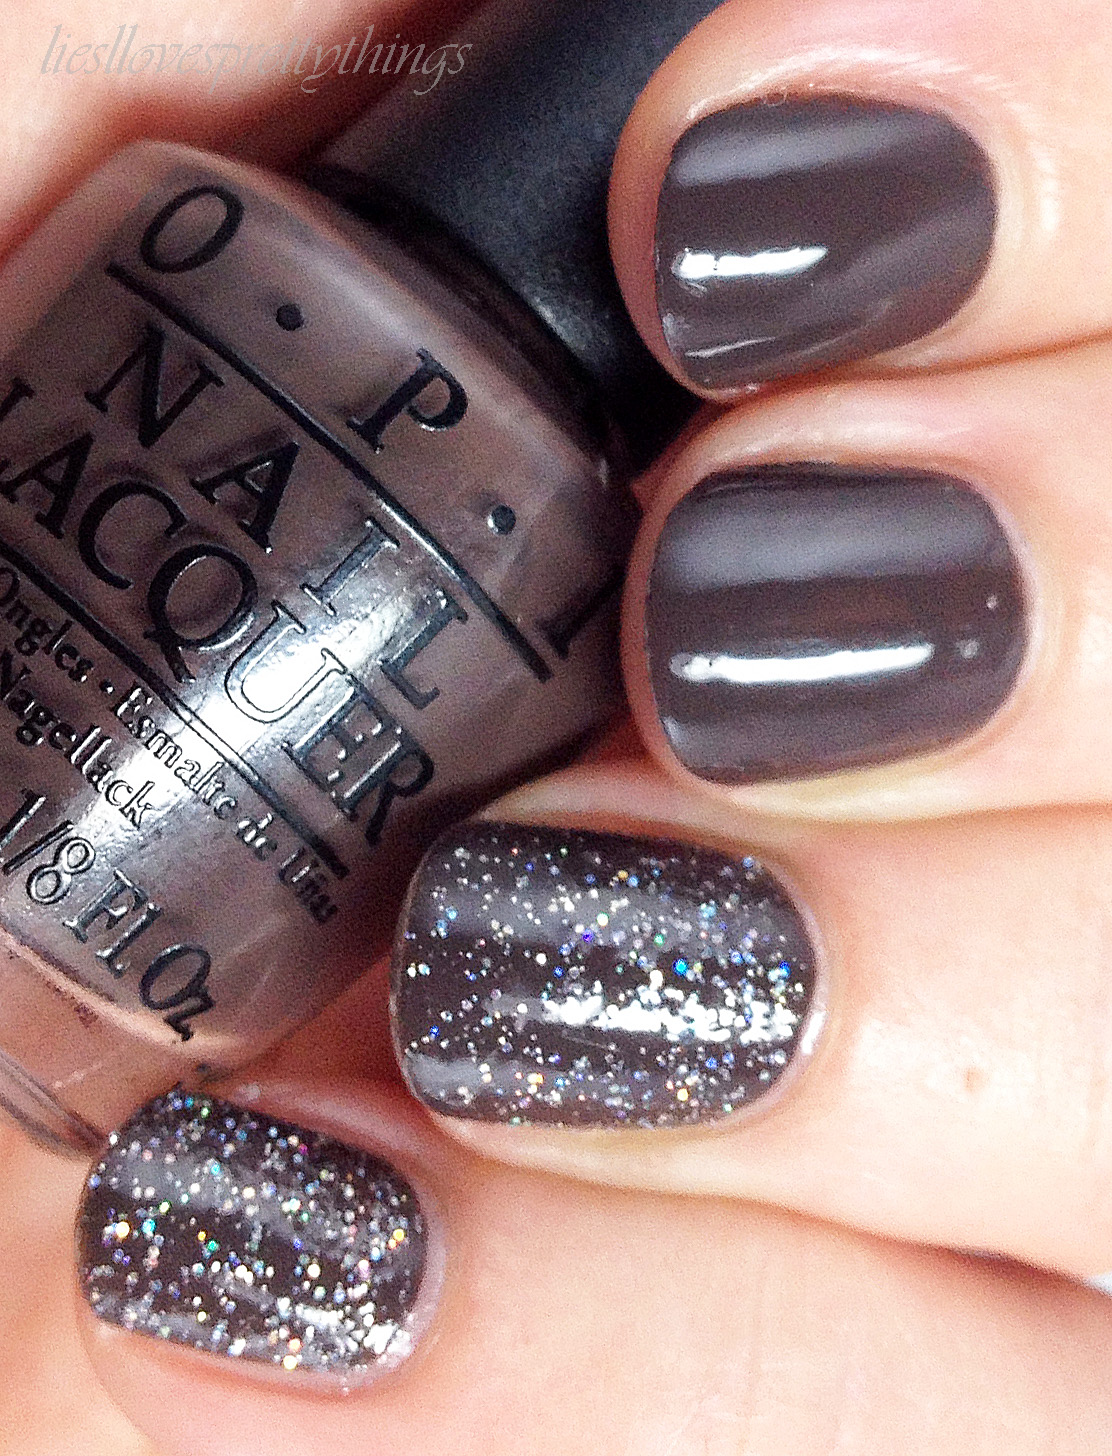 OPI How Great Is Your Dane? + My Voice Is a Little Norse swatch and review